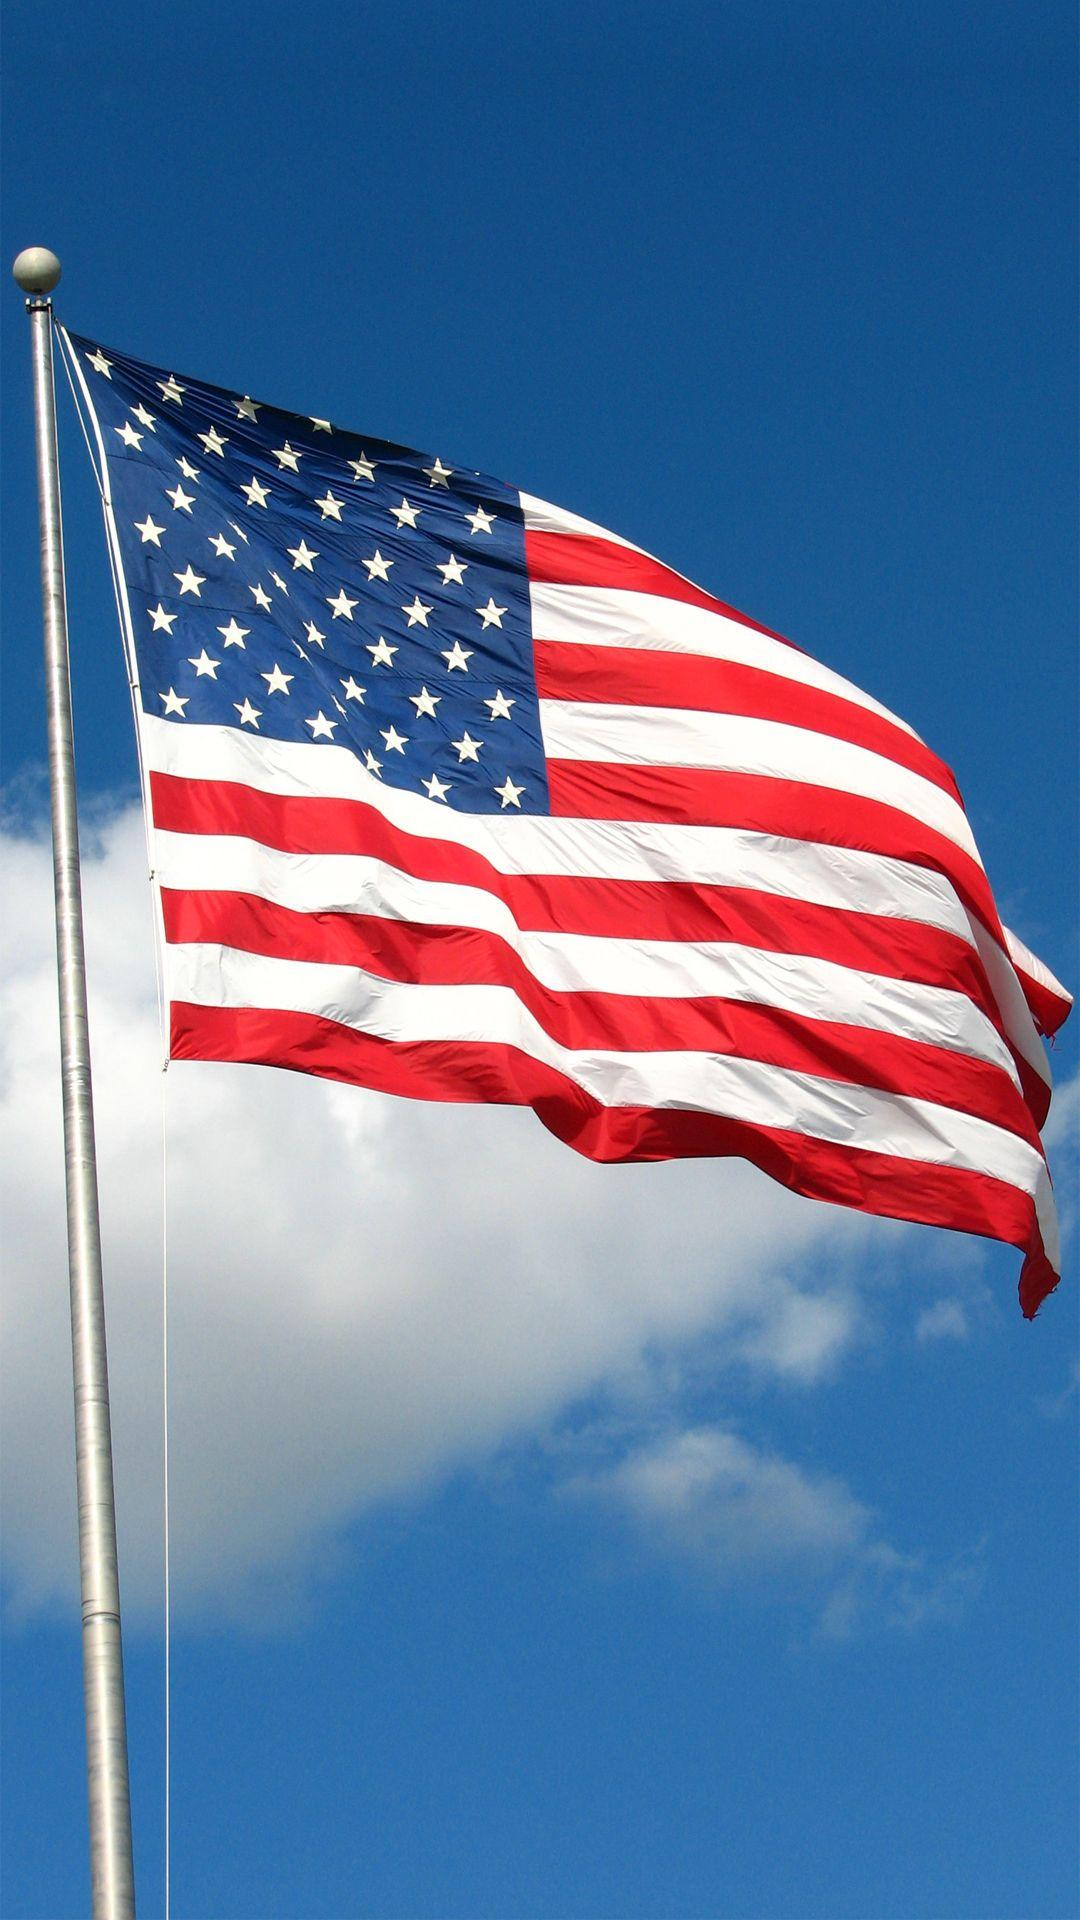 USA American Flag Sky Android Wallpapers free download